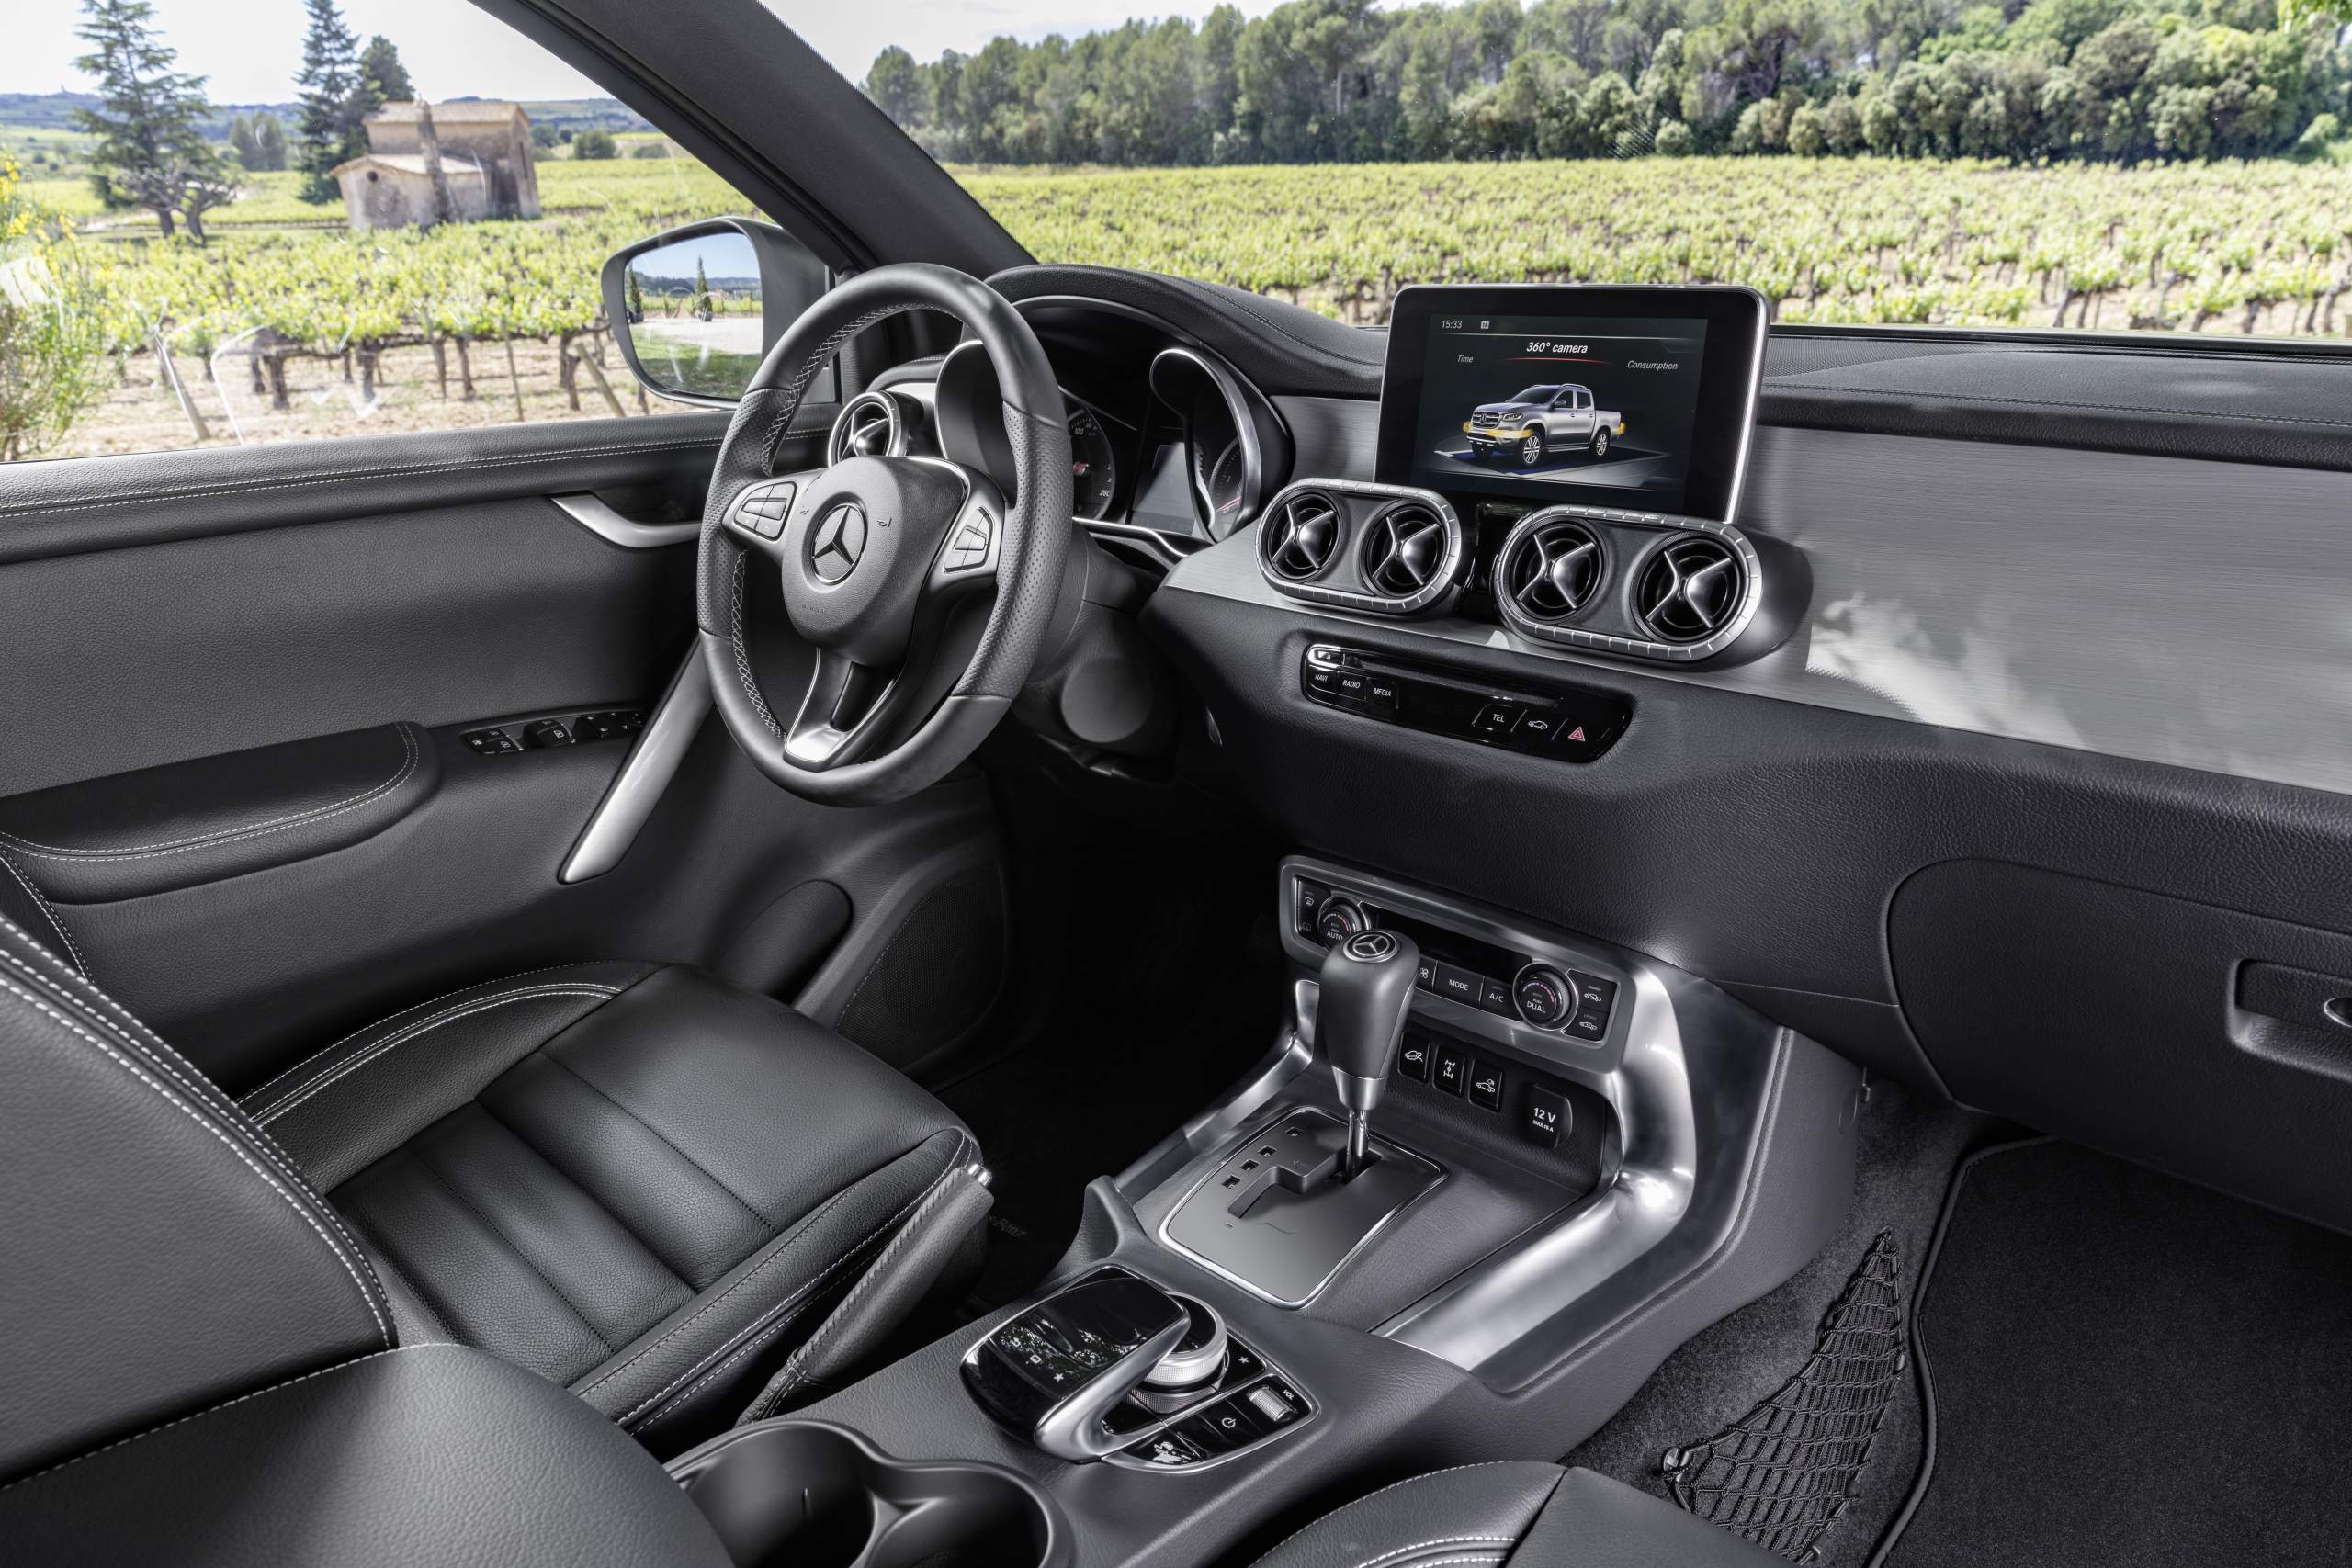 Mercedes-Benz X-Class Power interior